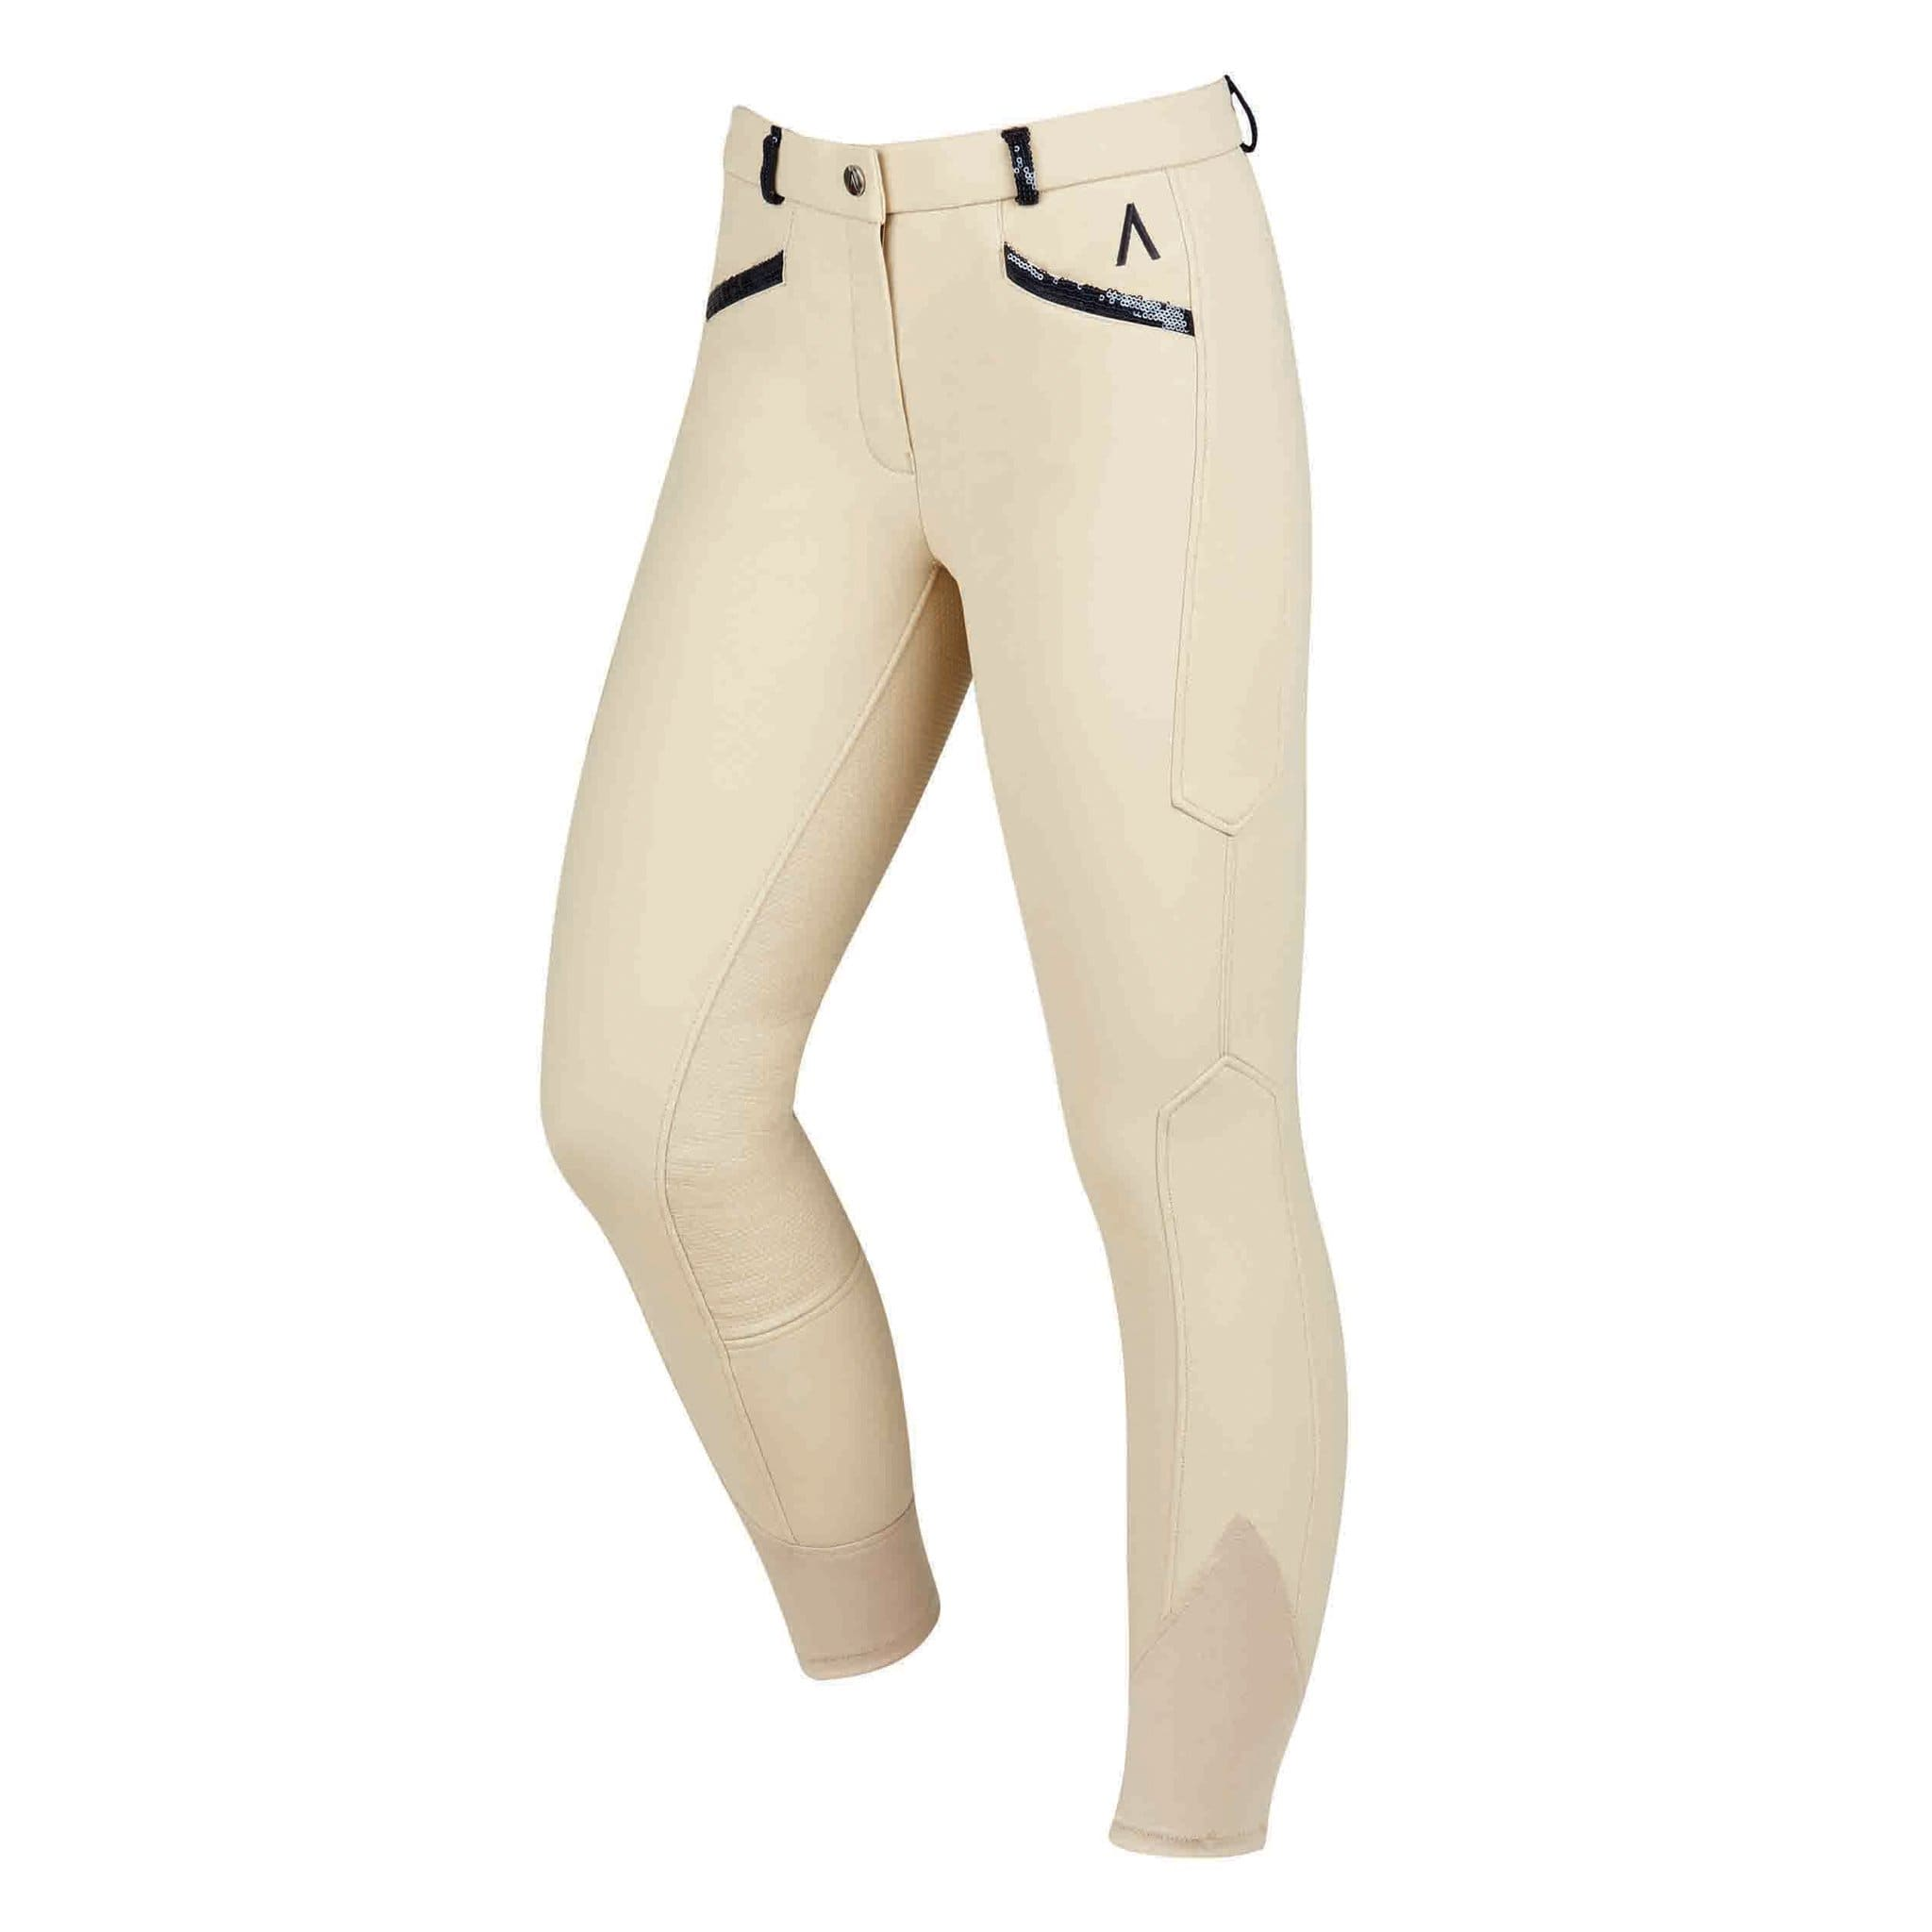 Dublin Black Linda Silicone Full Seat Breeches 1001556009 Tan Beige Front